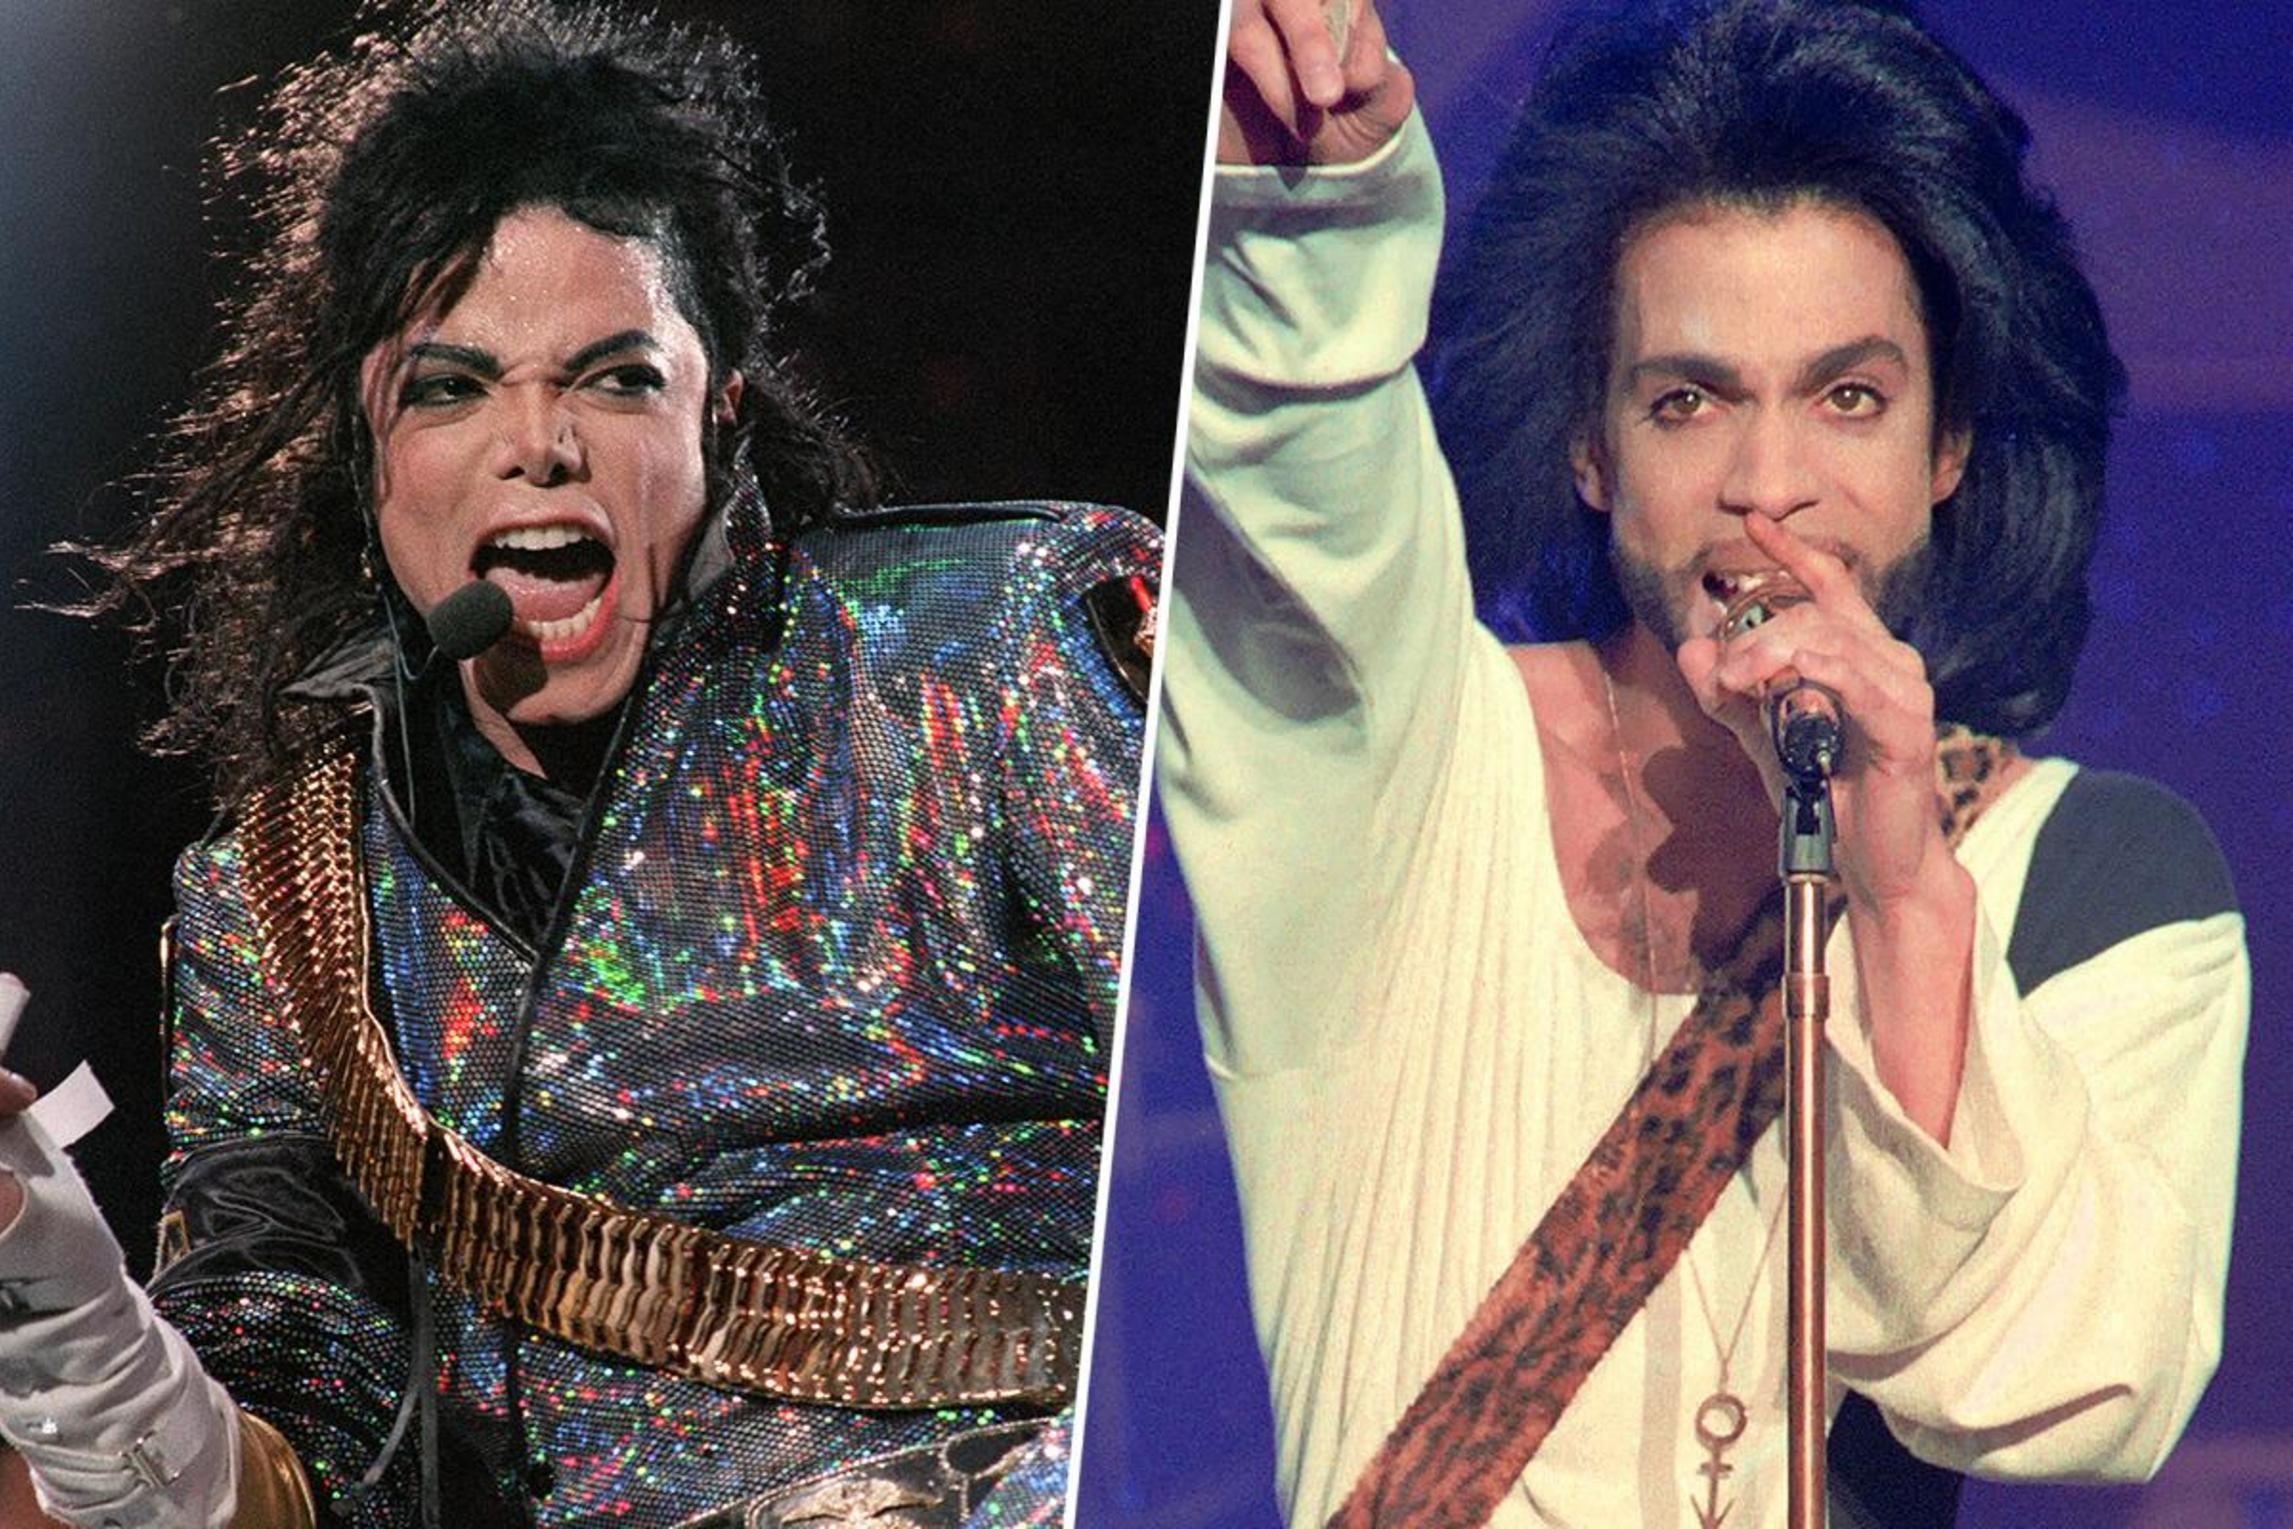 More Iconic Pop Legend Michael Jackson Or Prince The Tylt